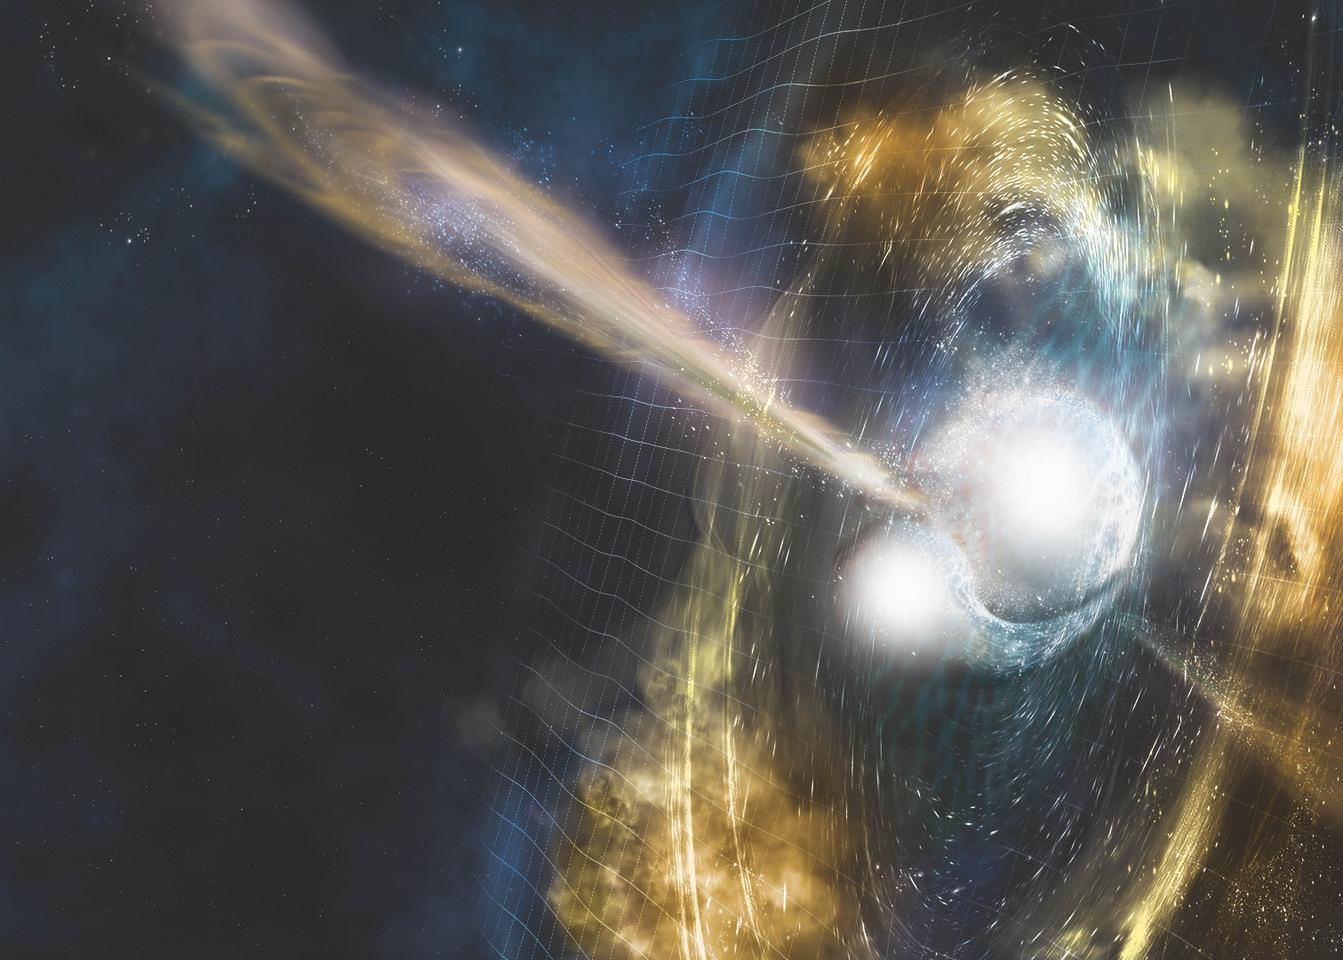 For the first time, astronomers from around the world have detected gravitational waves caused by two neutron stars colliding